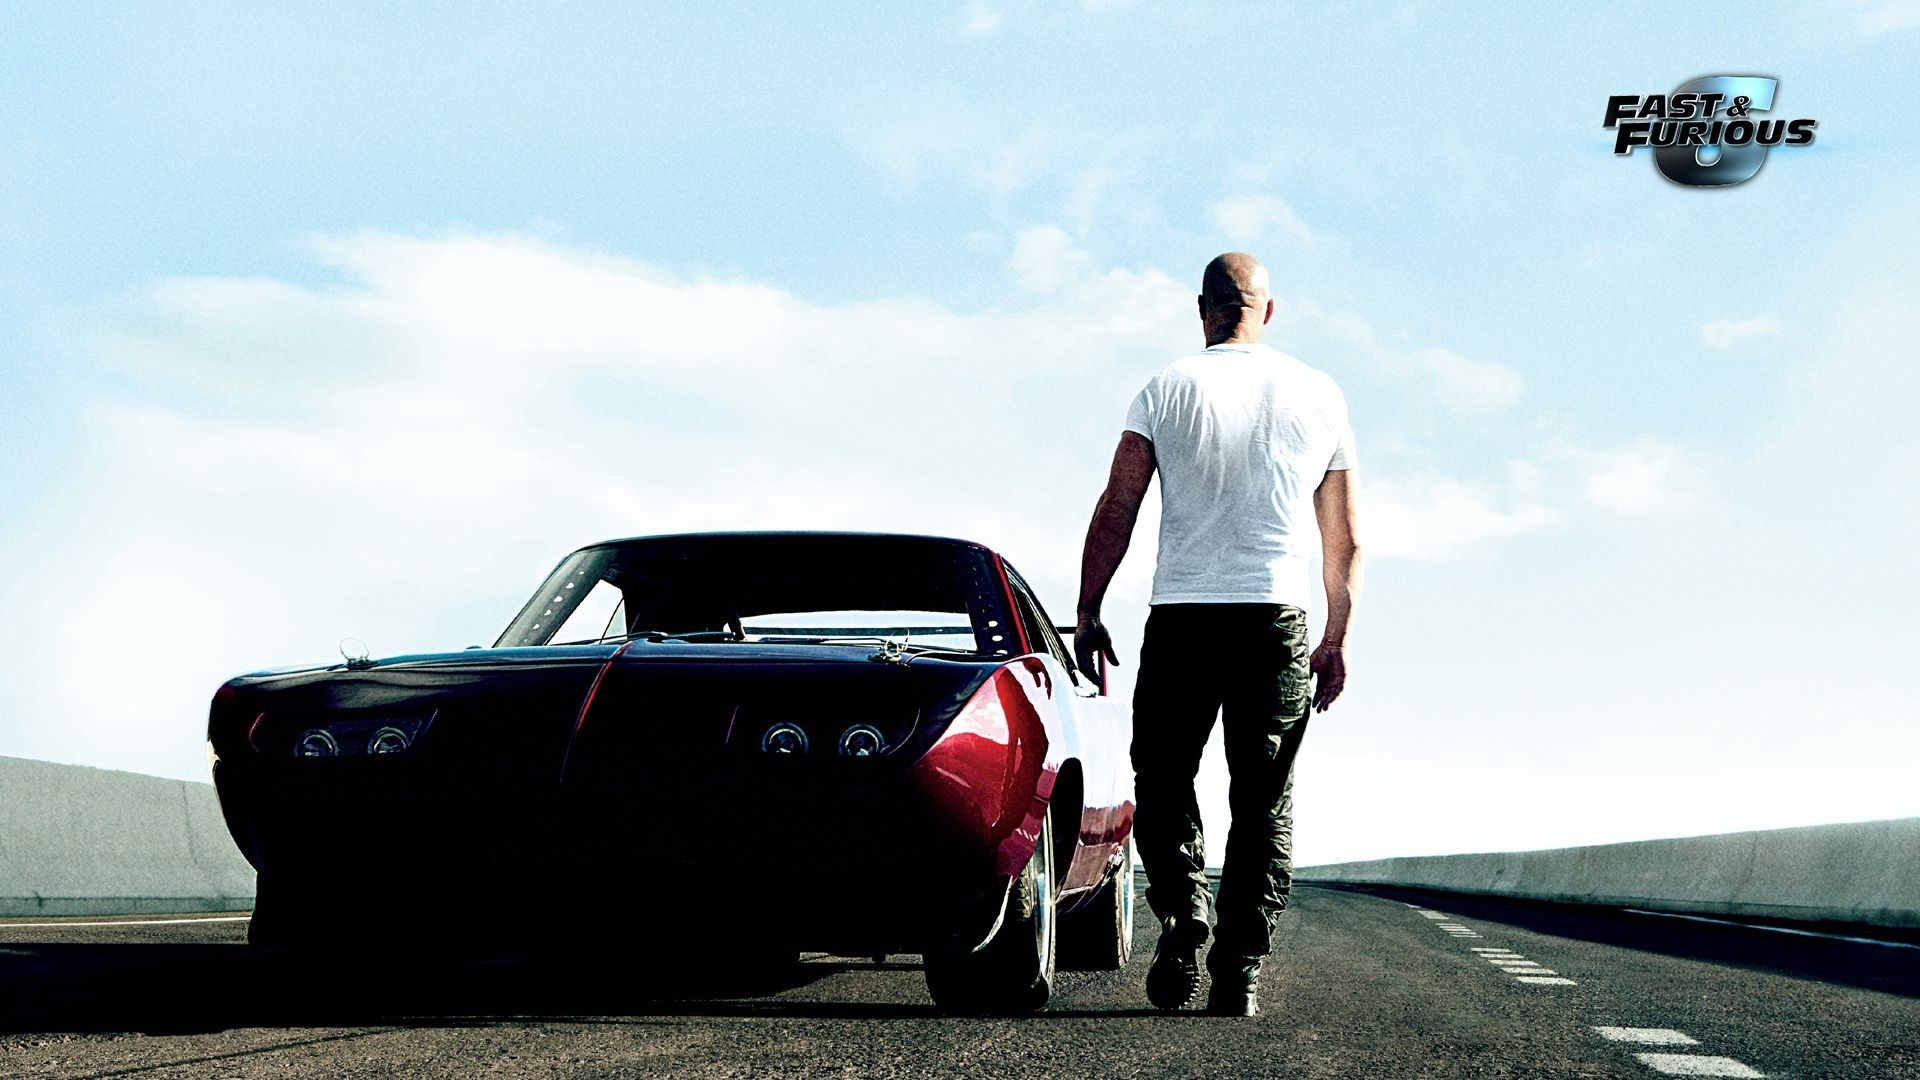 Vin Diesel Fast And Furious 6 Latest With Images Fast And Furious Vin Diesel Car